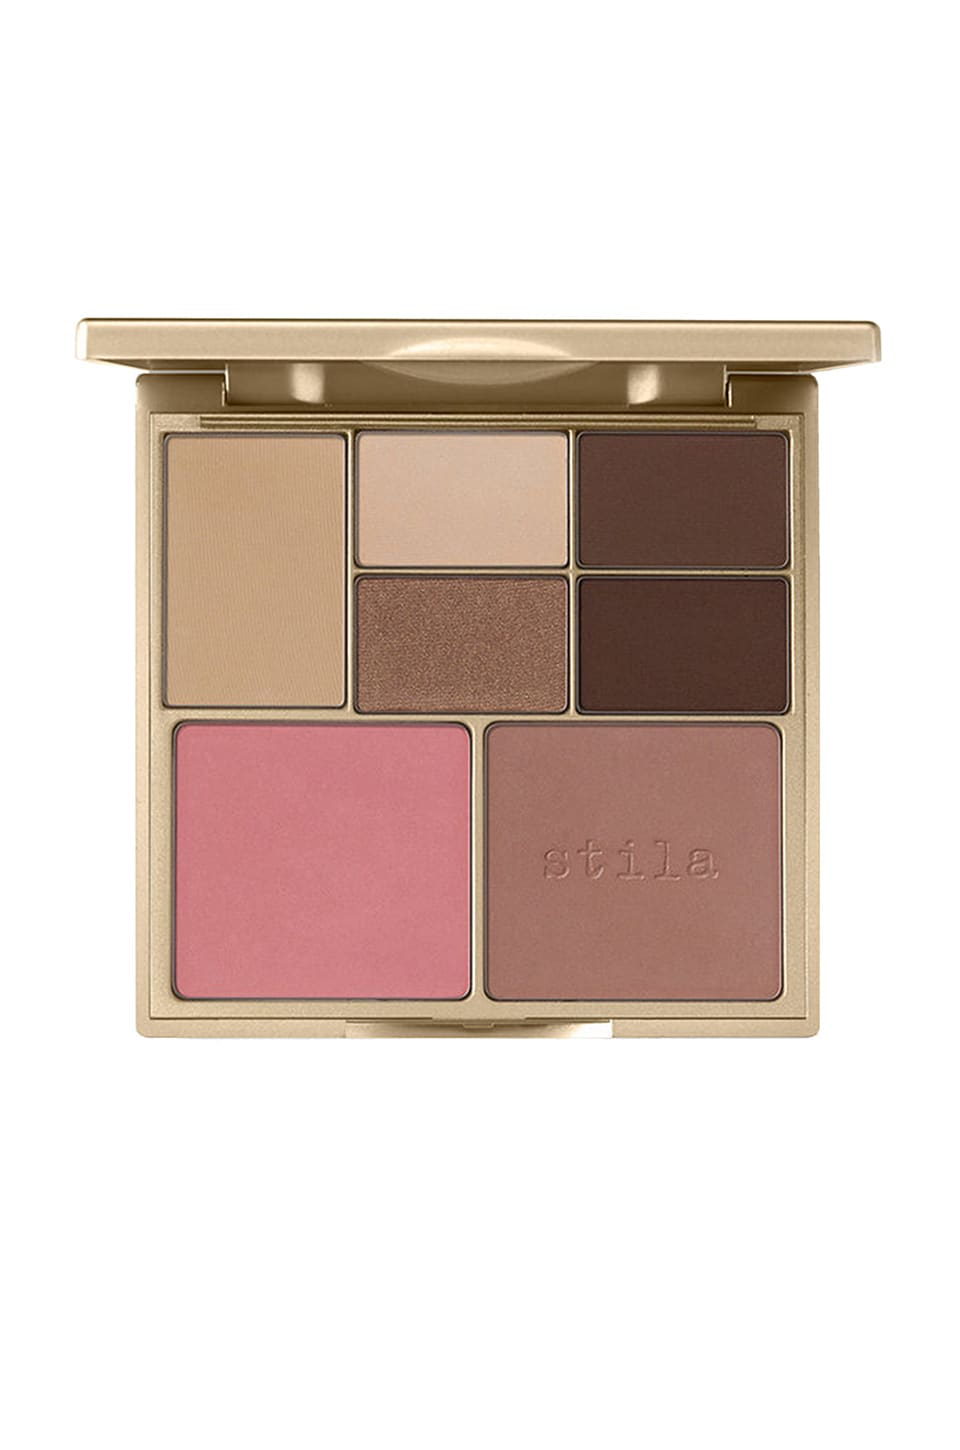 Stila Perfect Me Perfect Hue Eye & Cheek Palette in Light and Medium